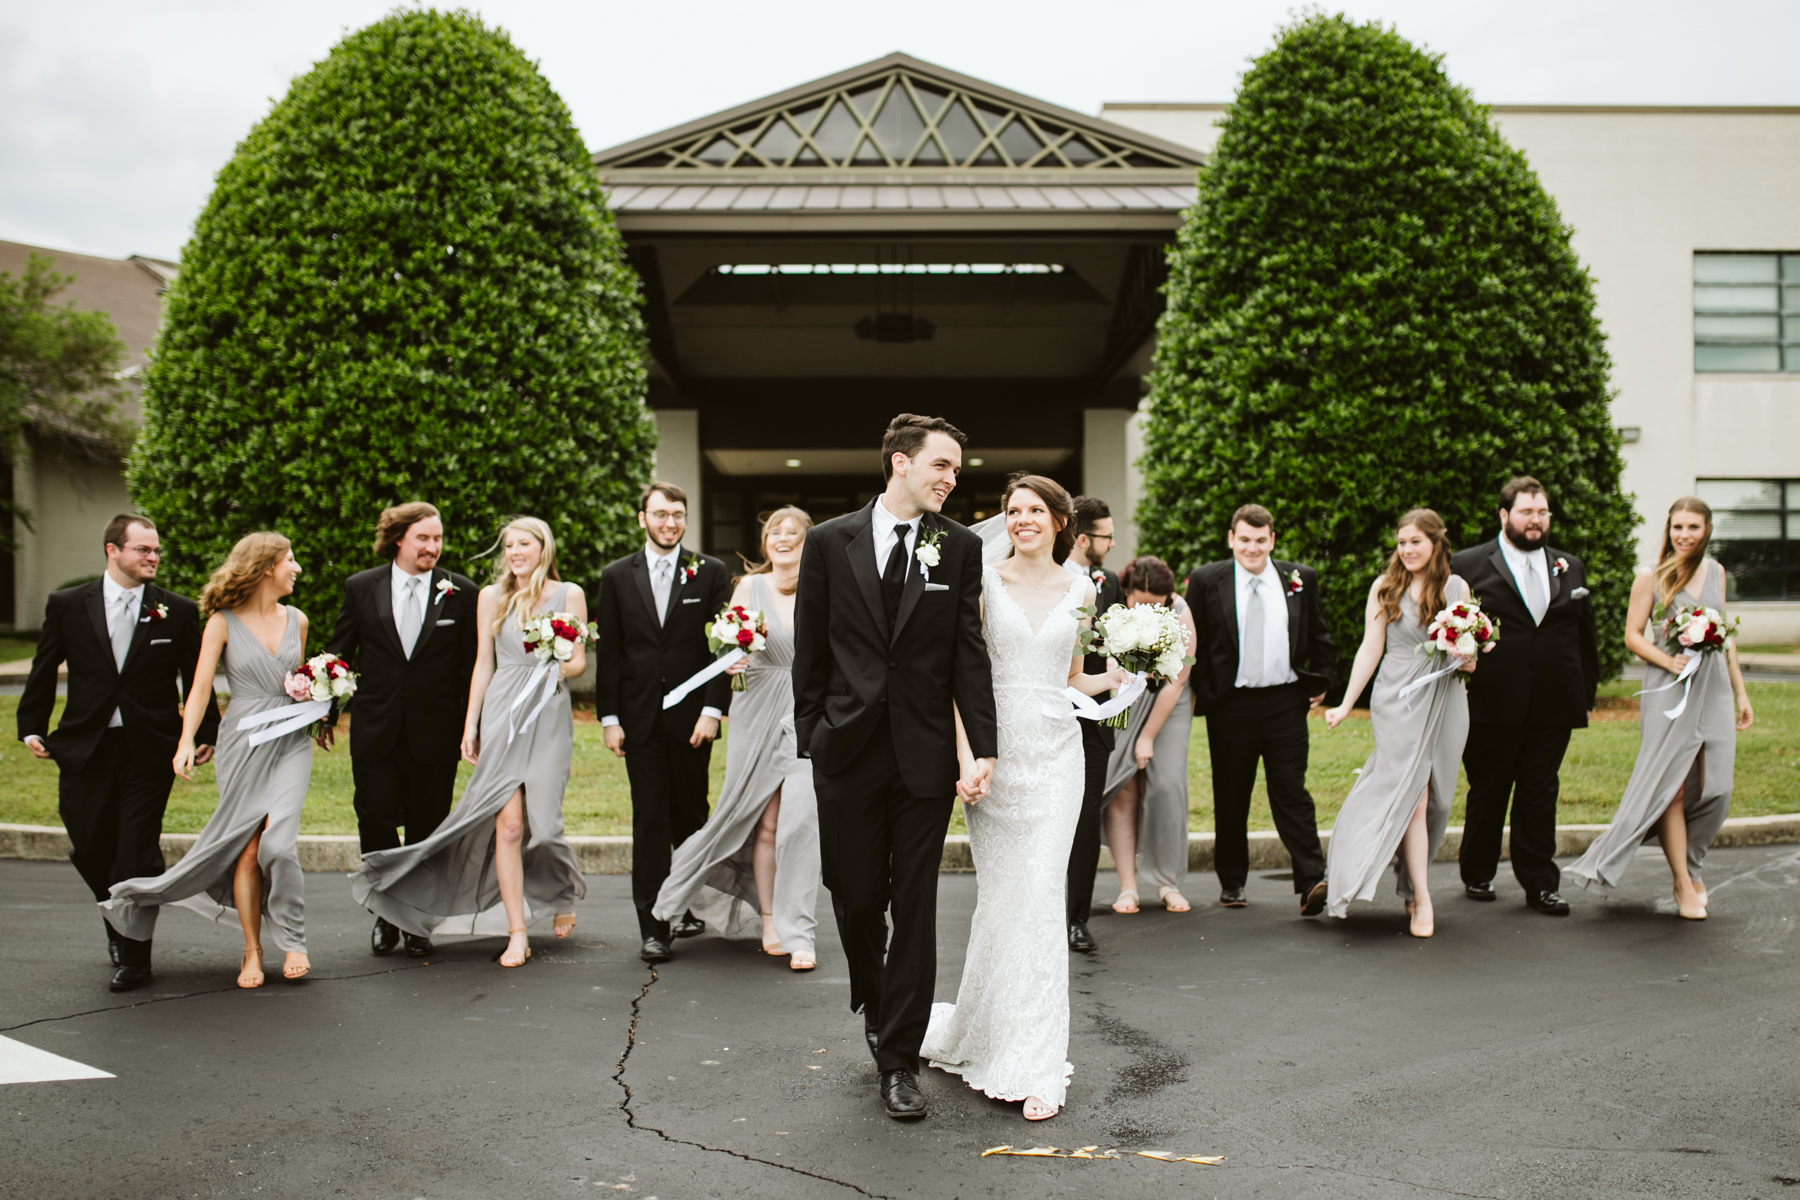 bridal party portraits after a rainy summer wedding at brentwood hills church in Nashville, tennessee